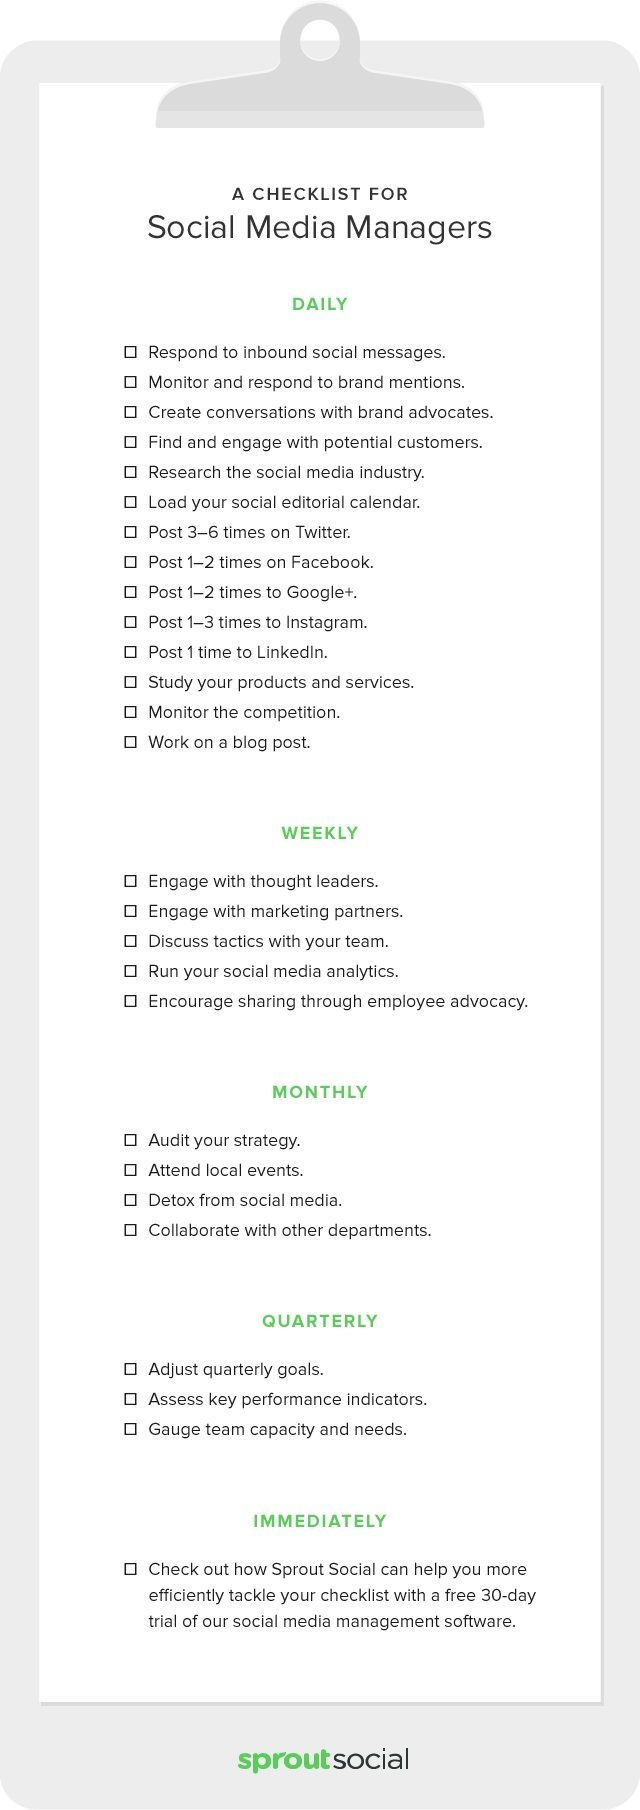 A complete list of social media tasks and projects, placed onto a downloadable checklist for daily, weekly, monthly schedules.